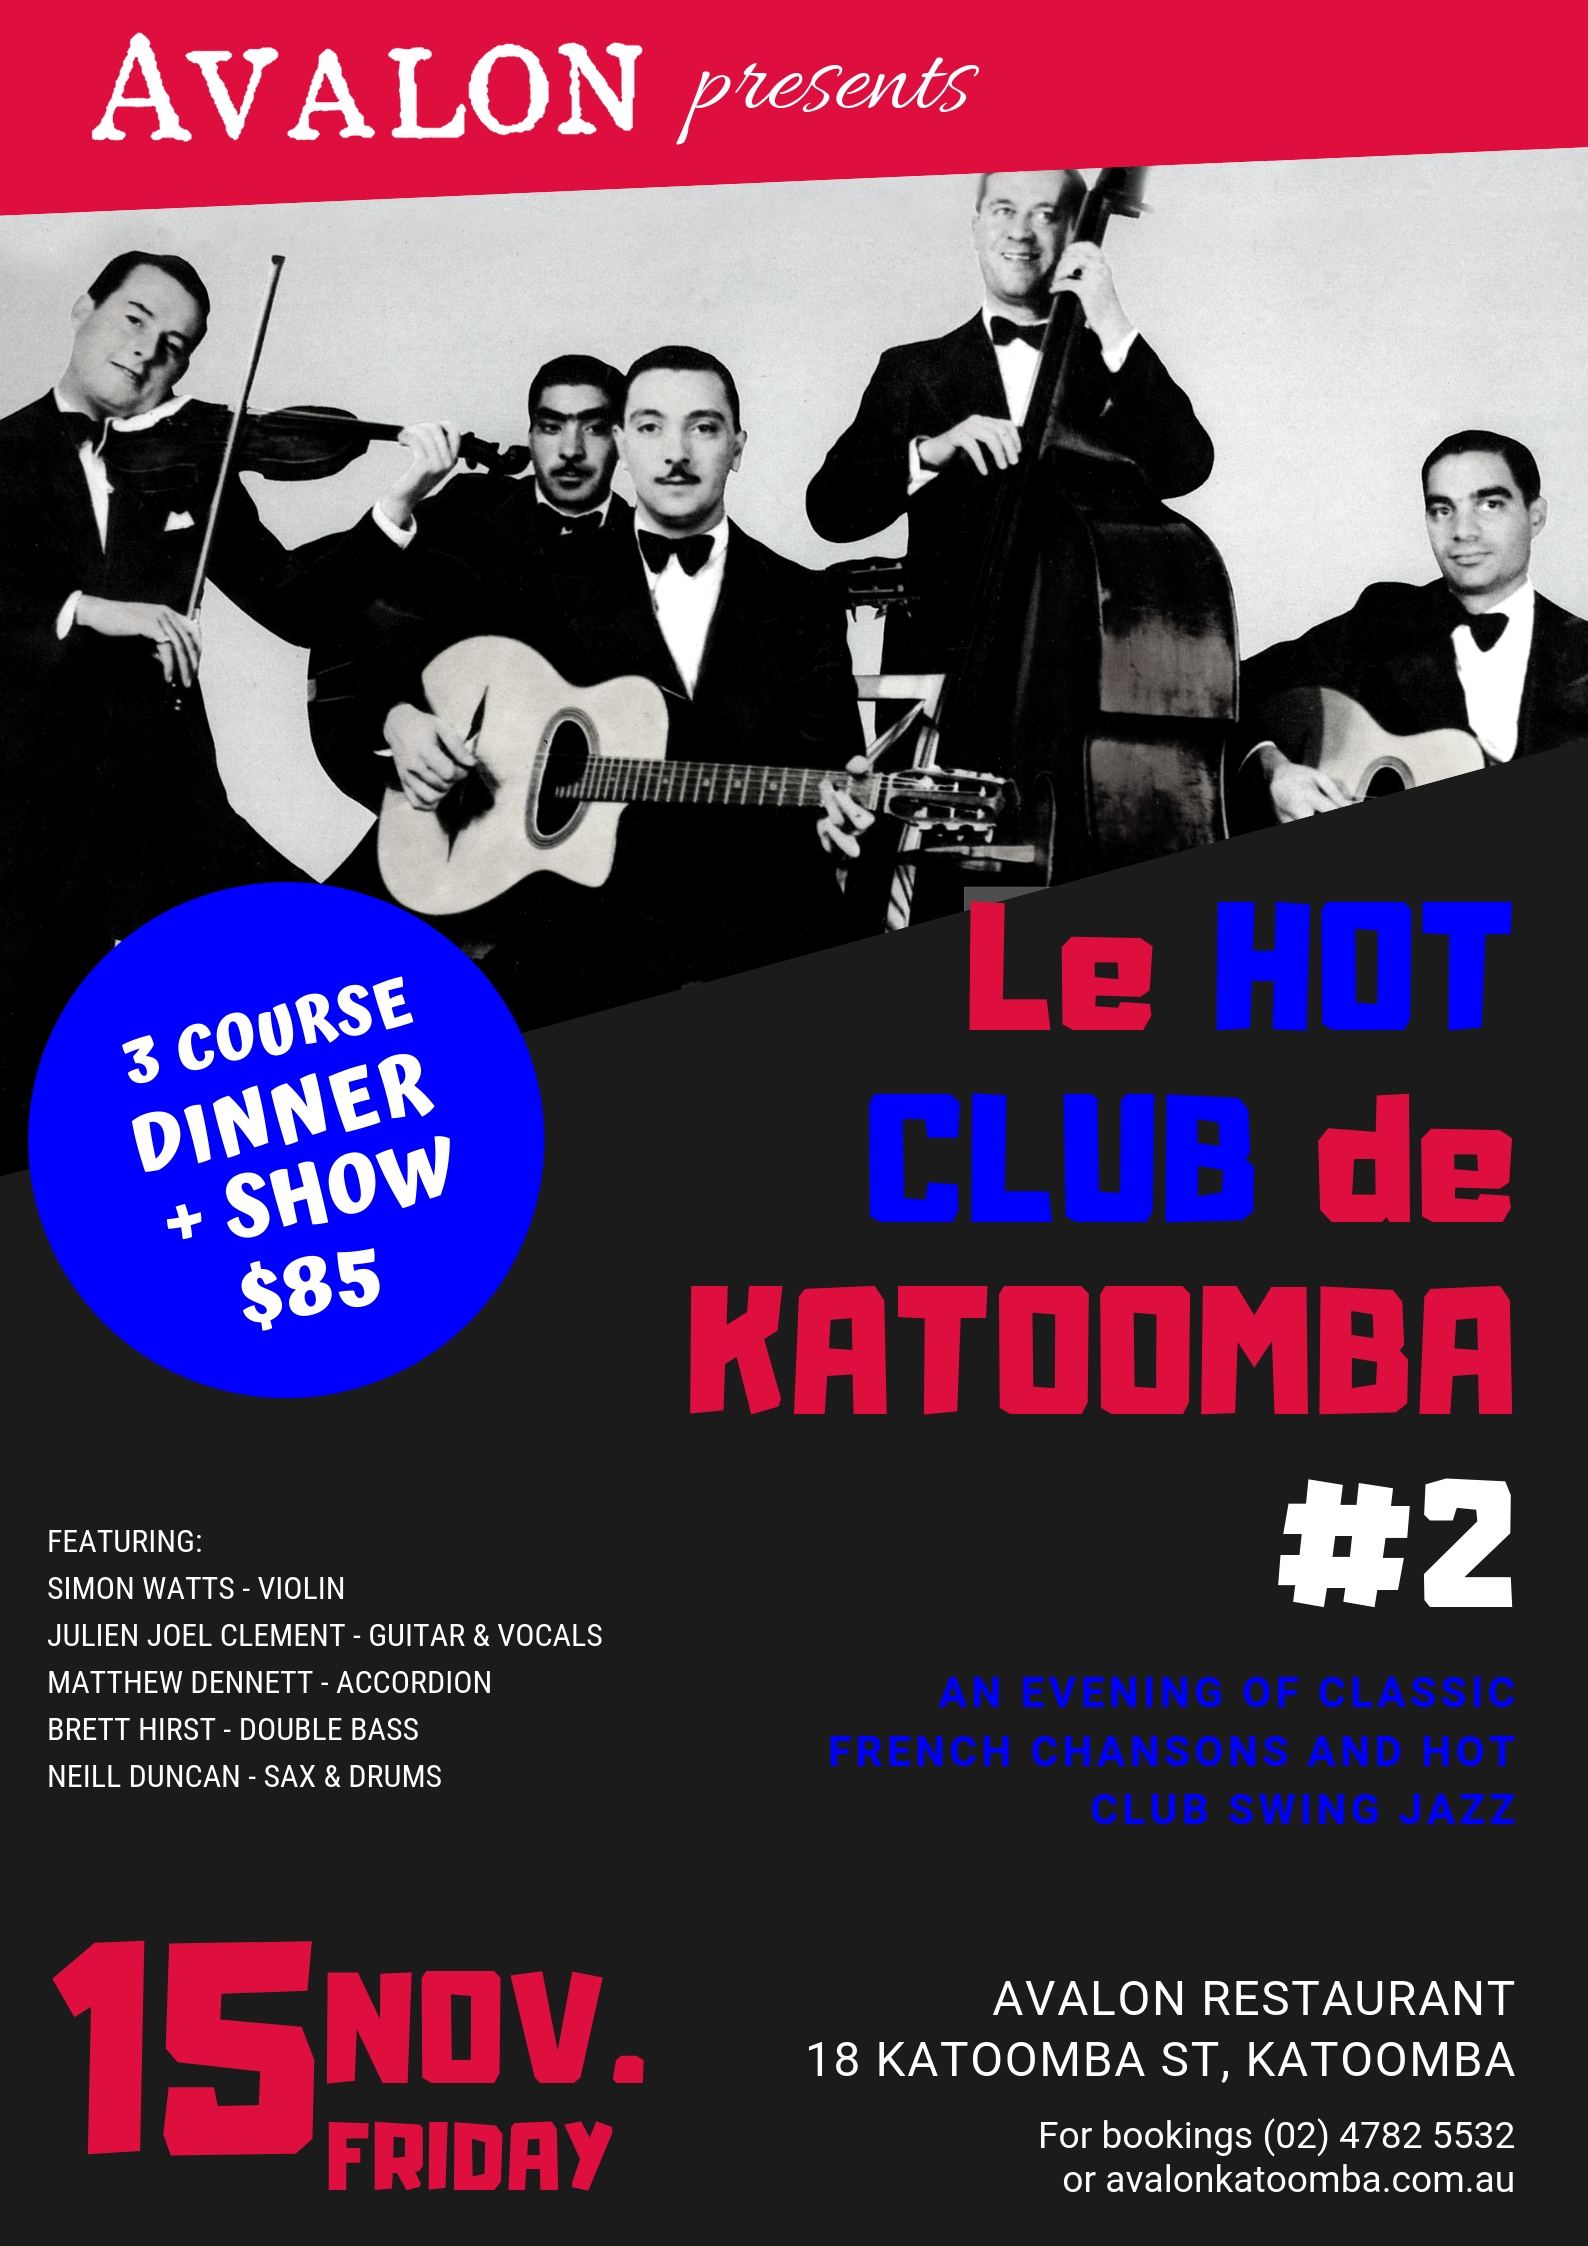 Le Hot Club de Katoomba